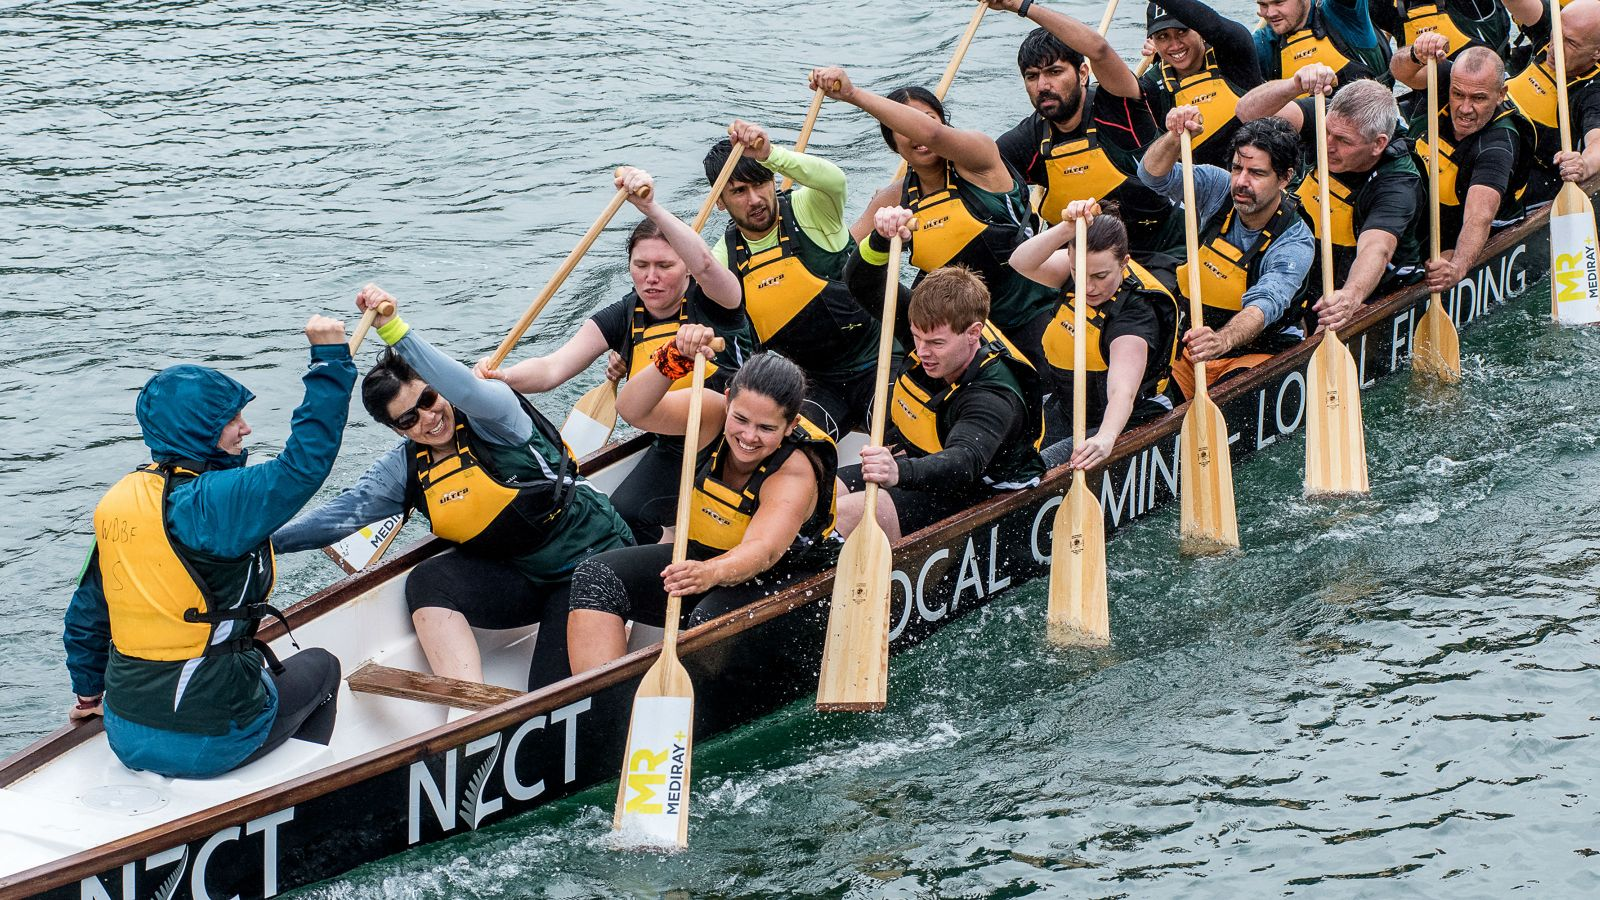 Dragonboat team members racing on Wellington Harbour.